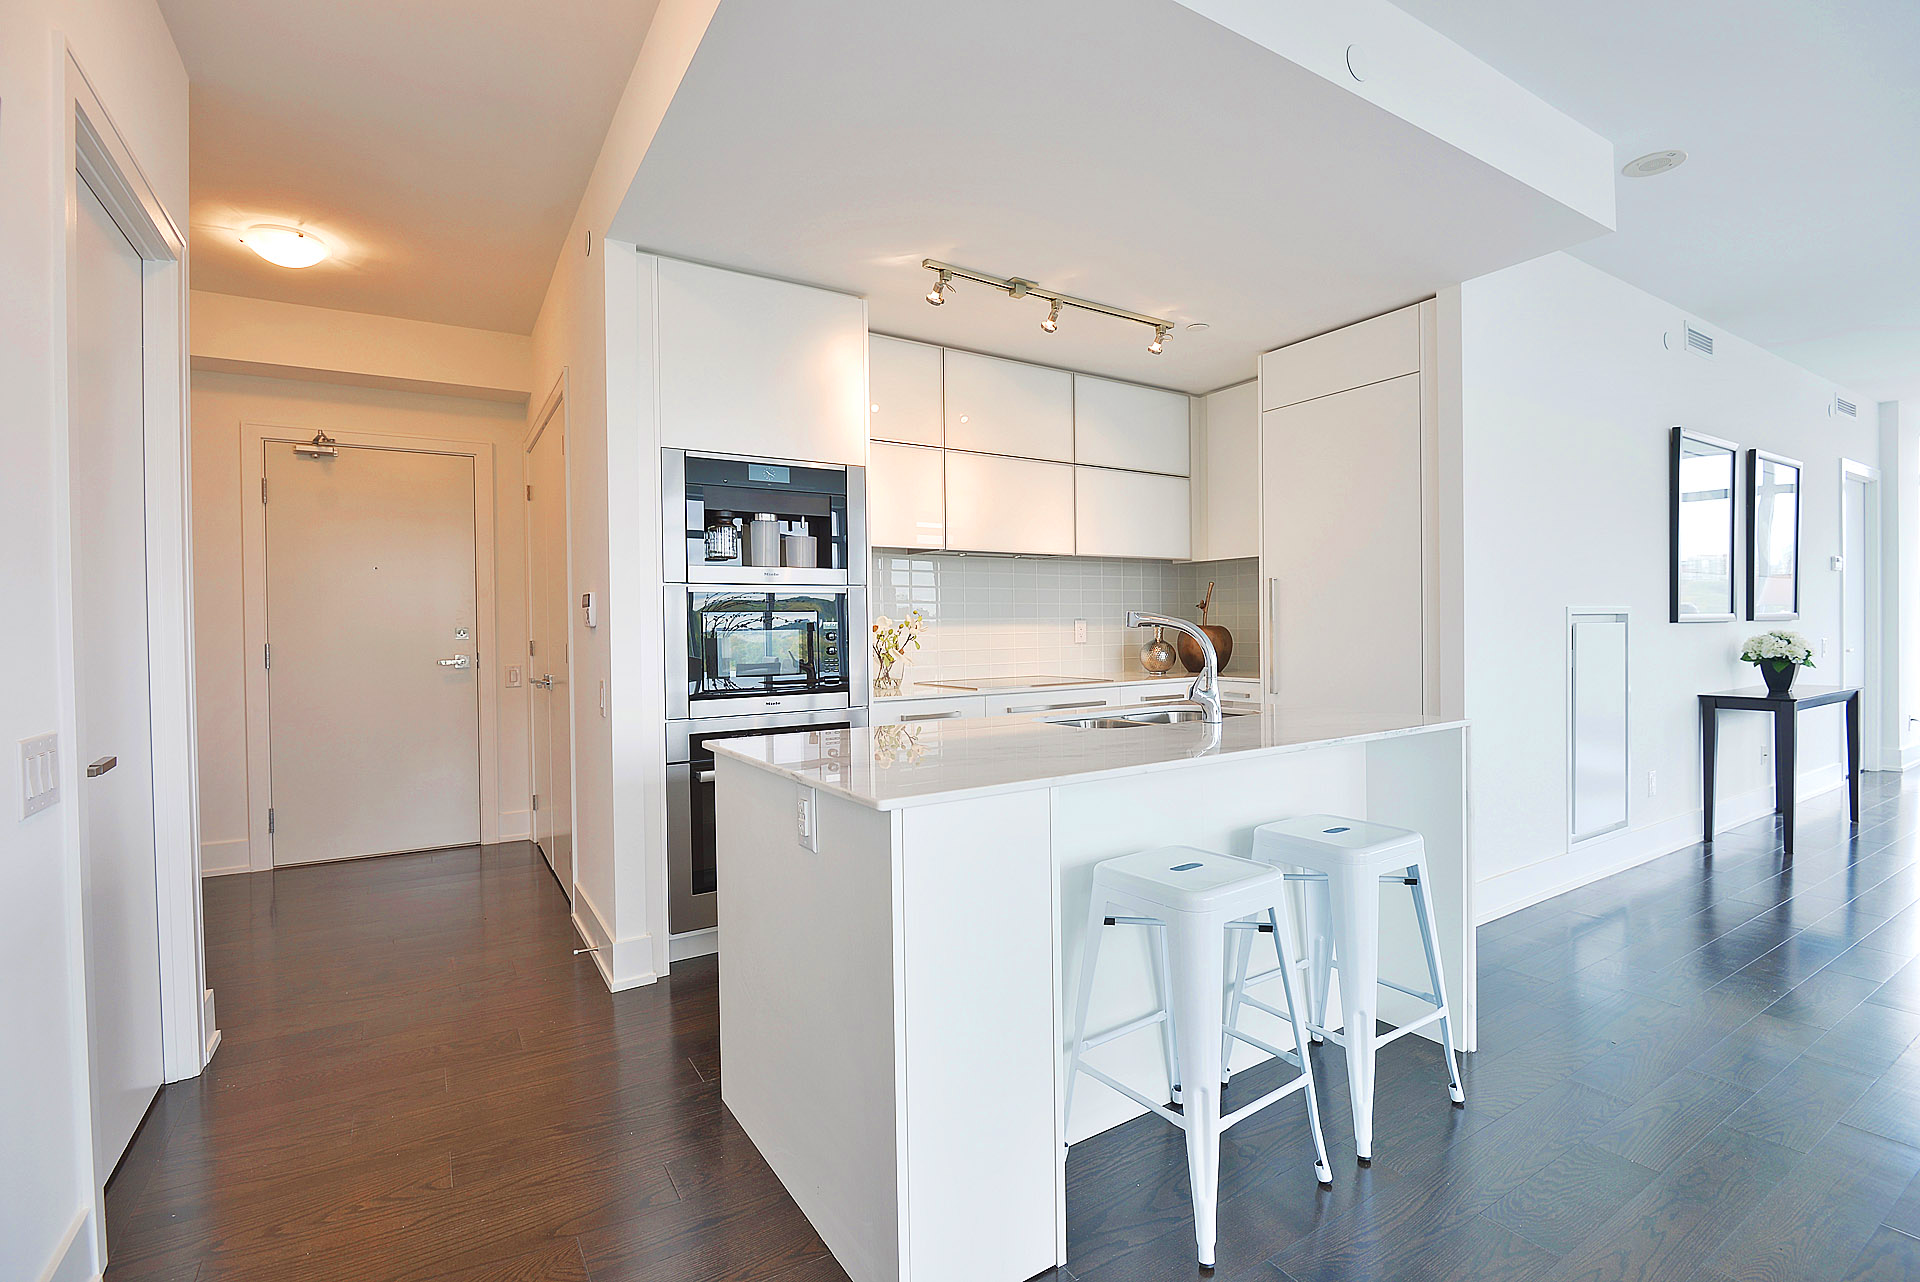 170 AVENUE ROAD - TWO BED FOR SALE - CONTACT YOSSI KAPLAN